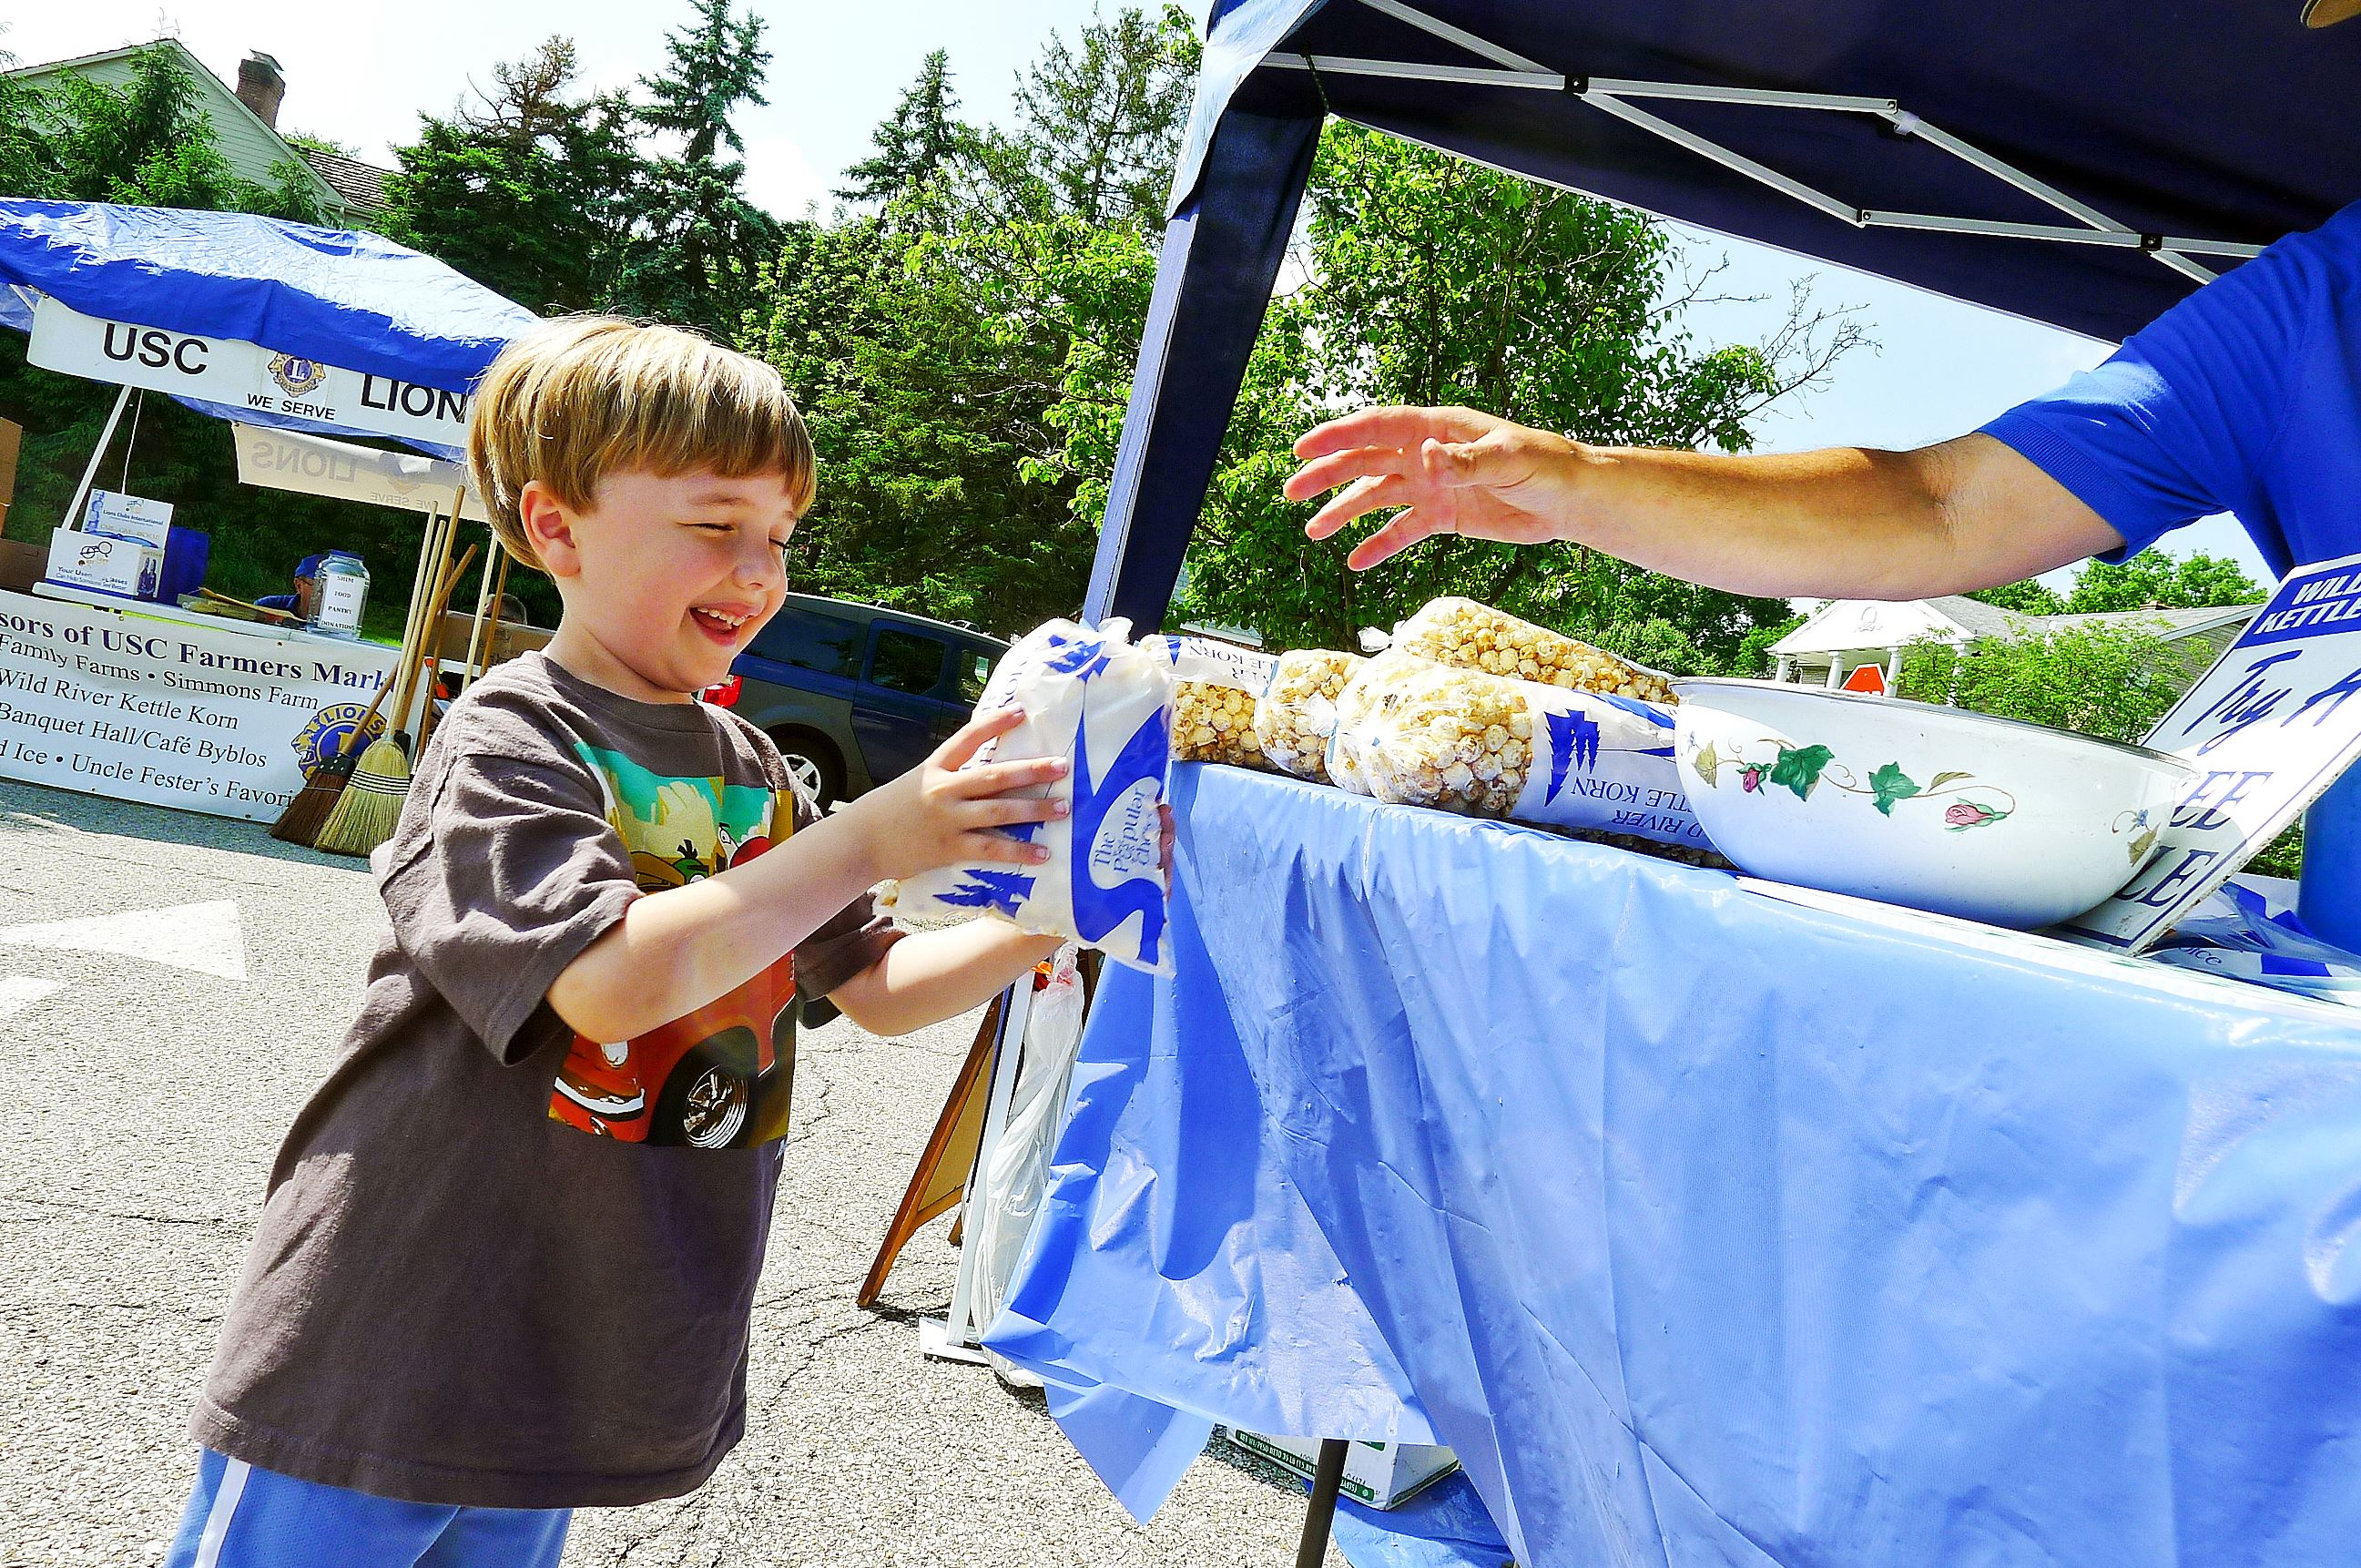 P1230817-14 Hudson Honeycutt got a snack from Wild River Kettle Korn at opening day at the Upper St. Clair Farmers Market on May 29.